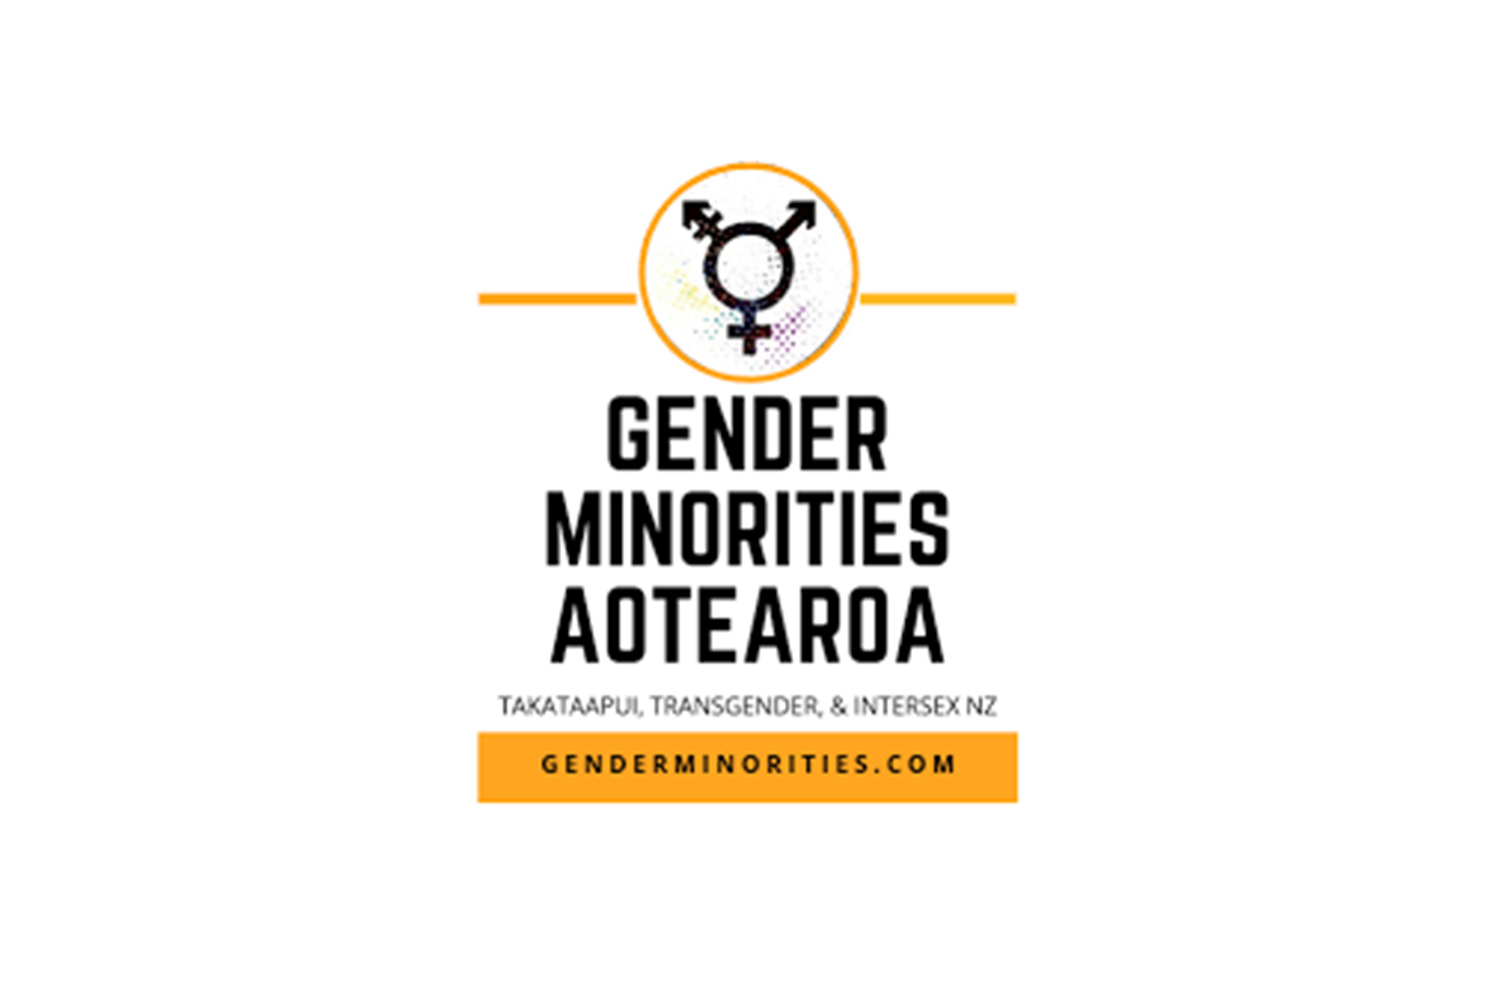 Gender Minorities Aotearoa